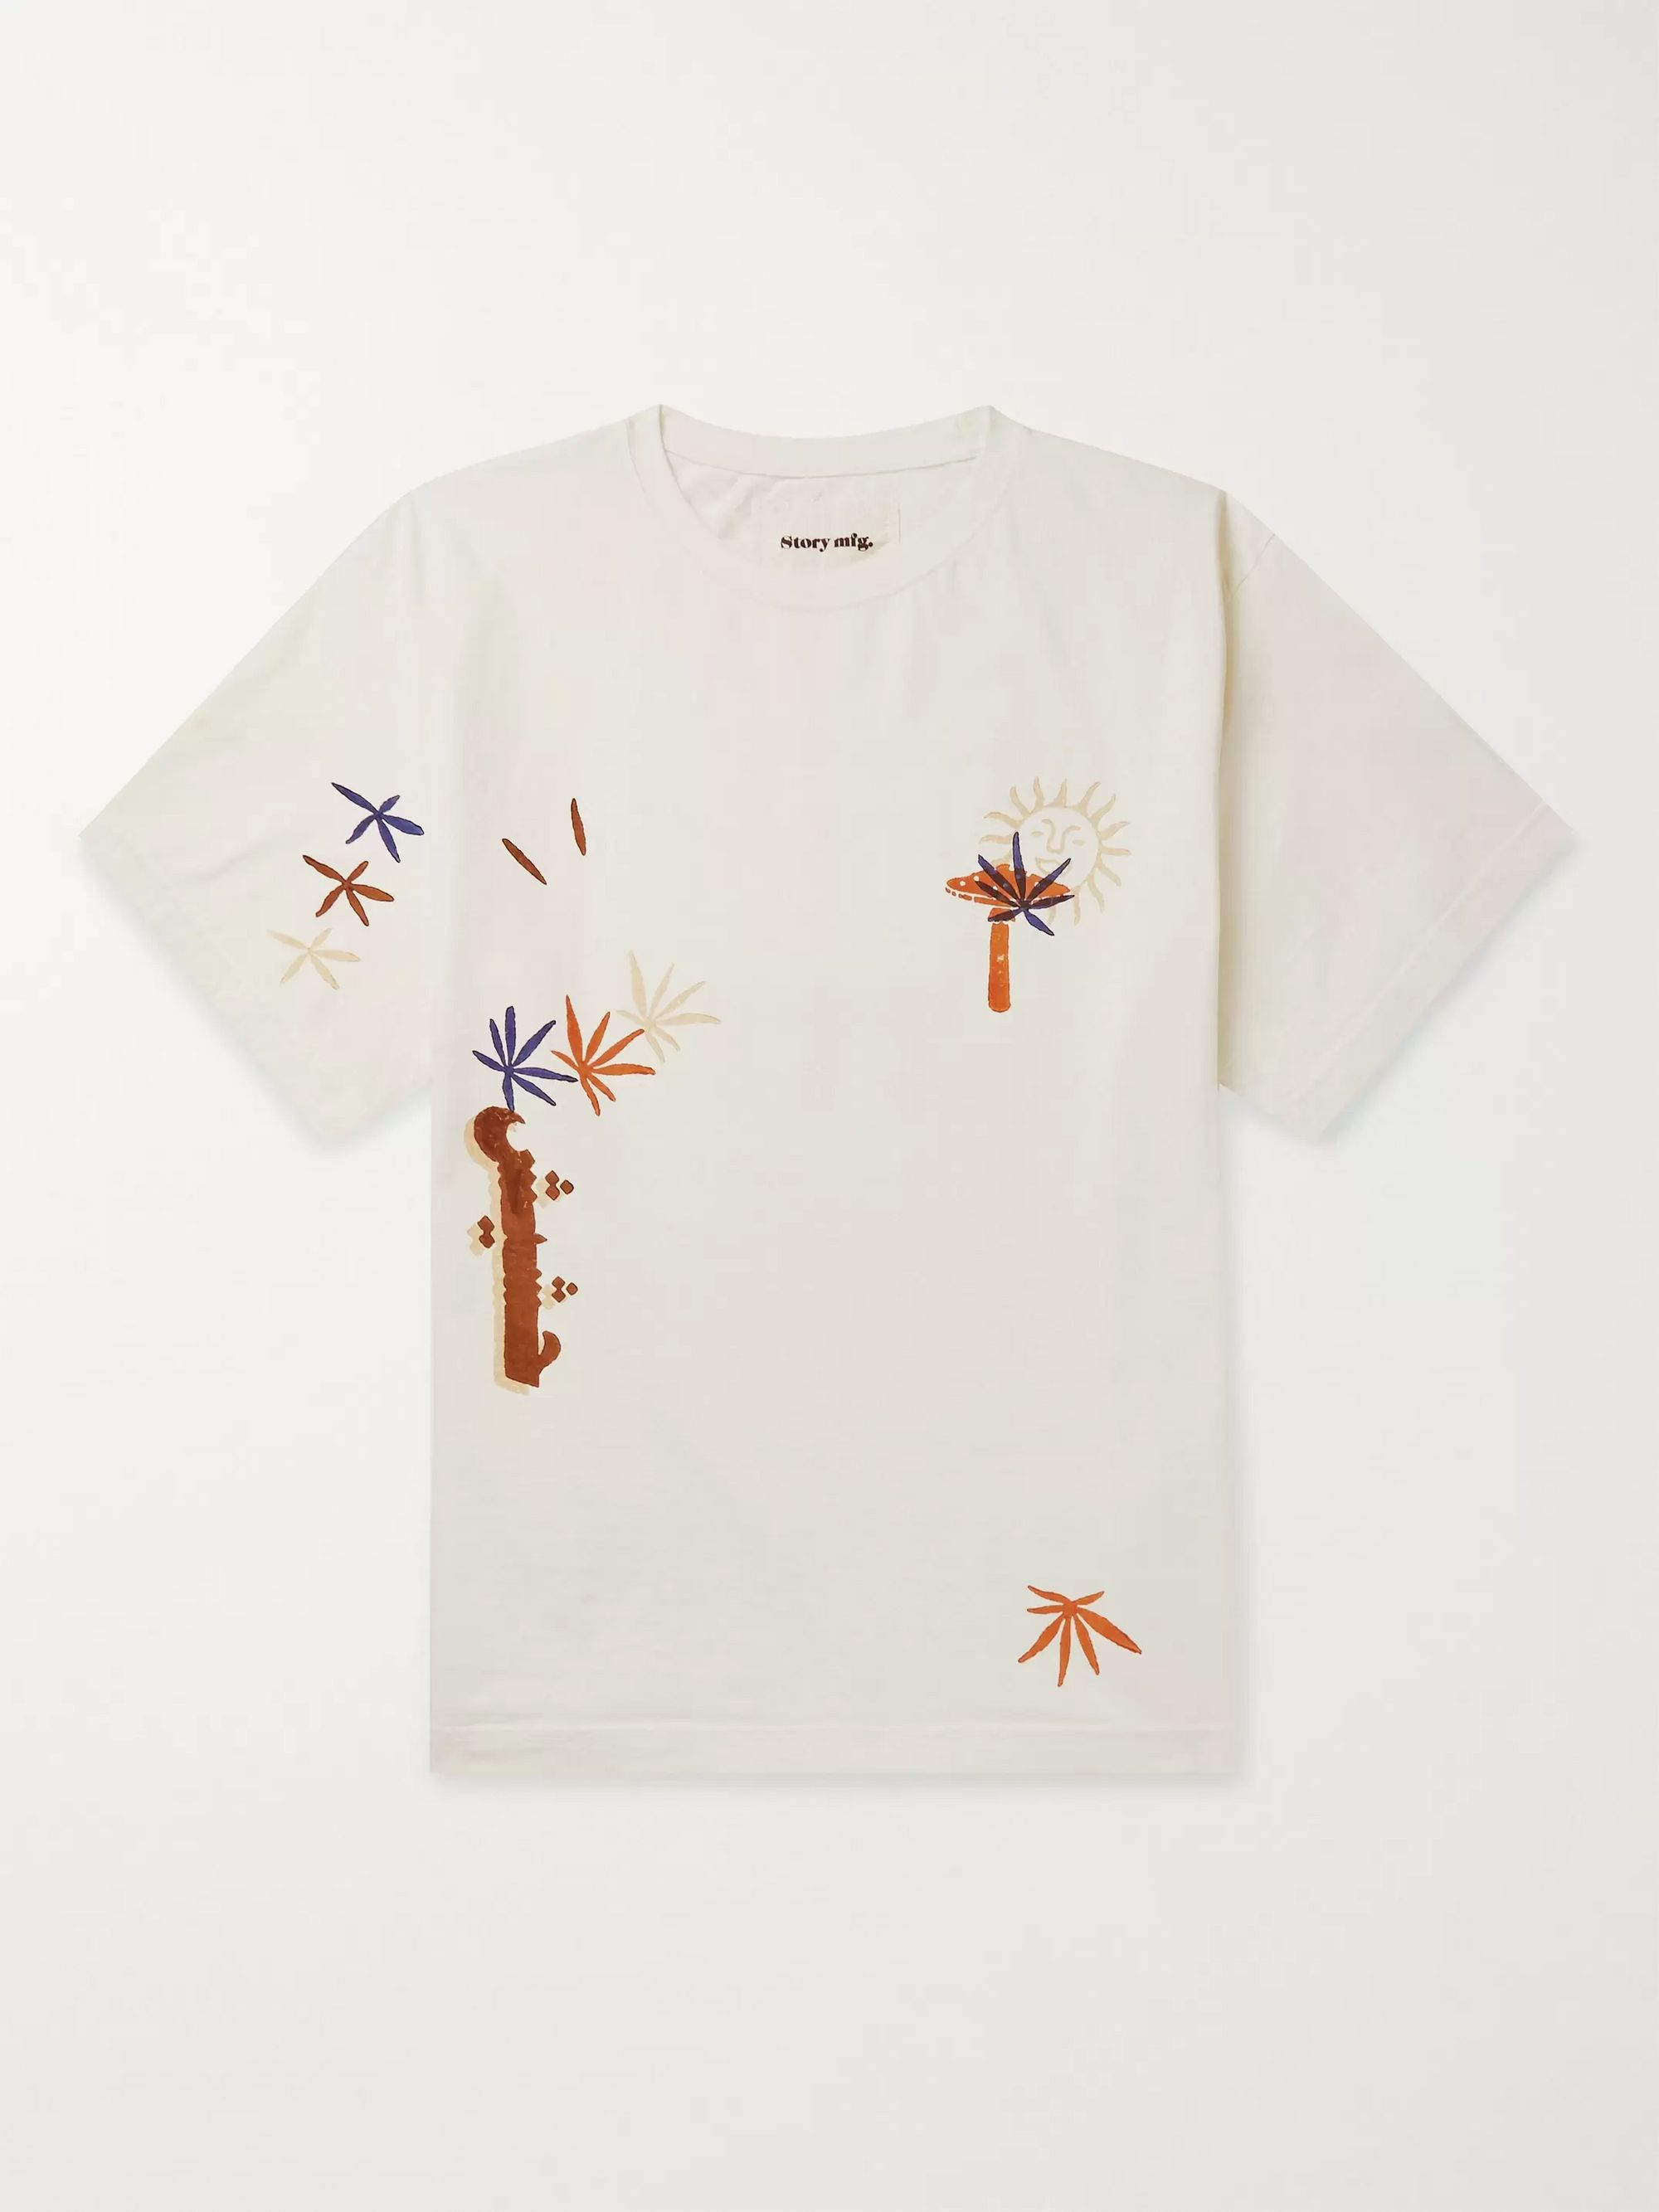 Story Mfg. Grateful Printed Organic Cotton-Jersey T-Shirt